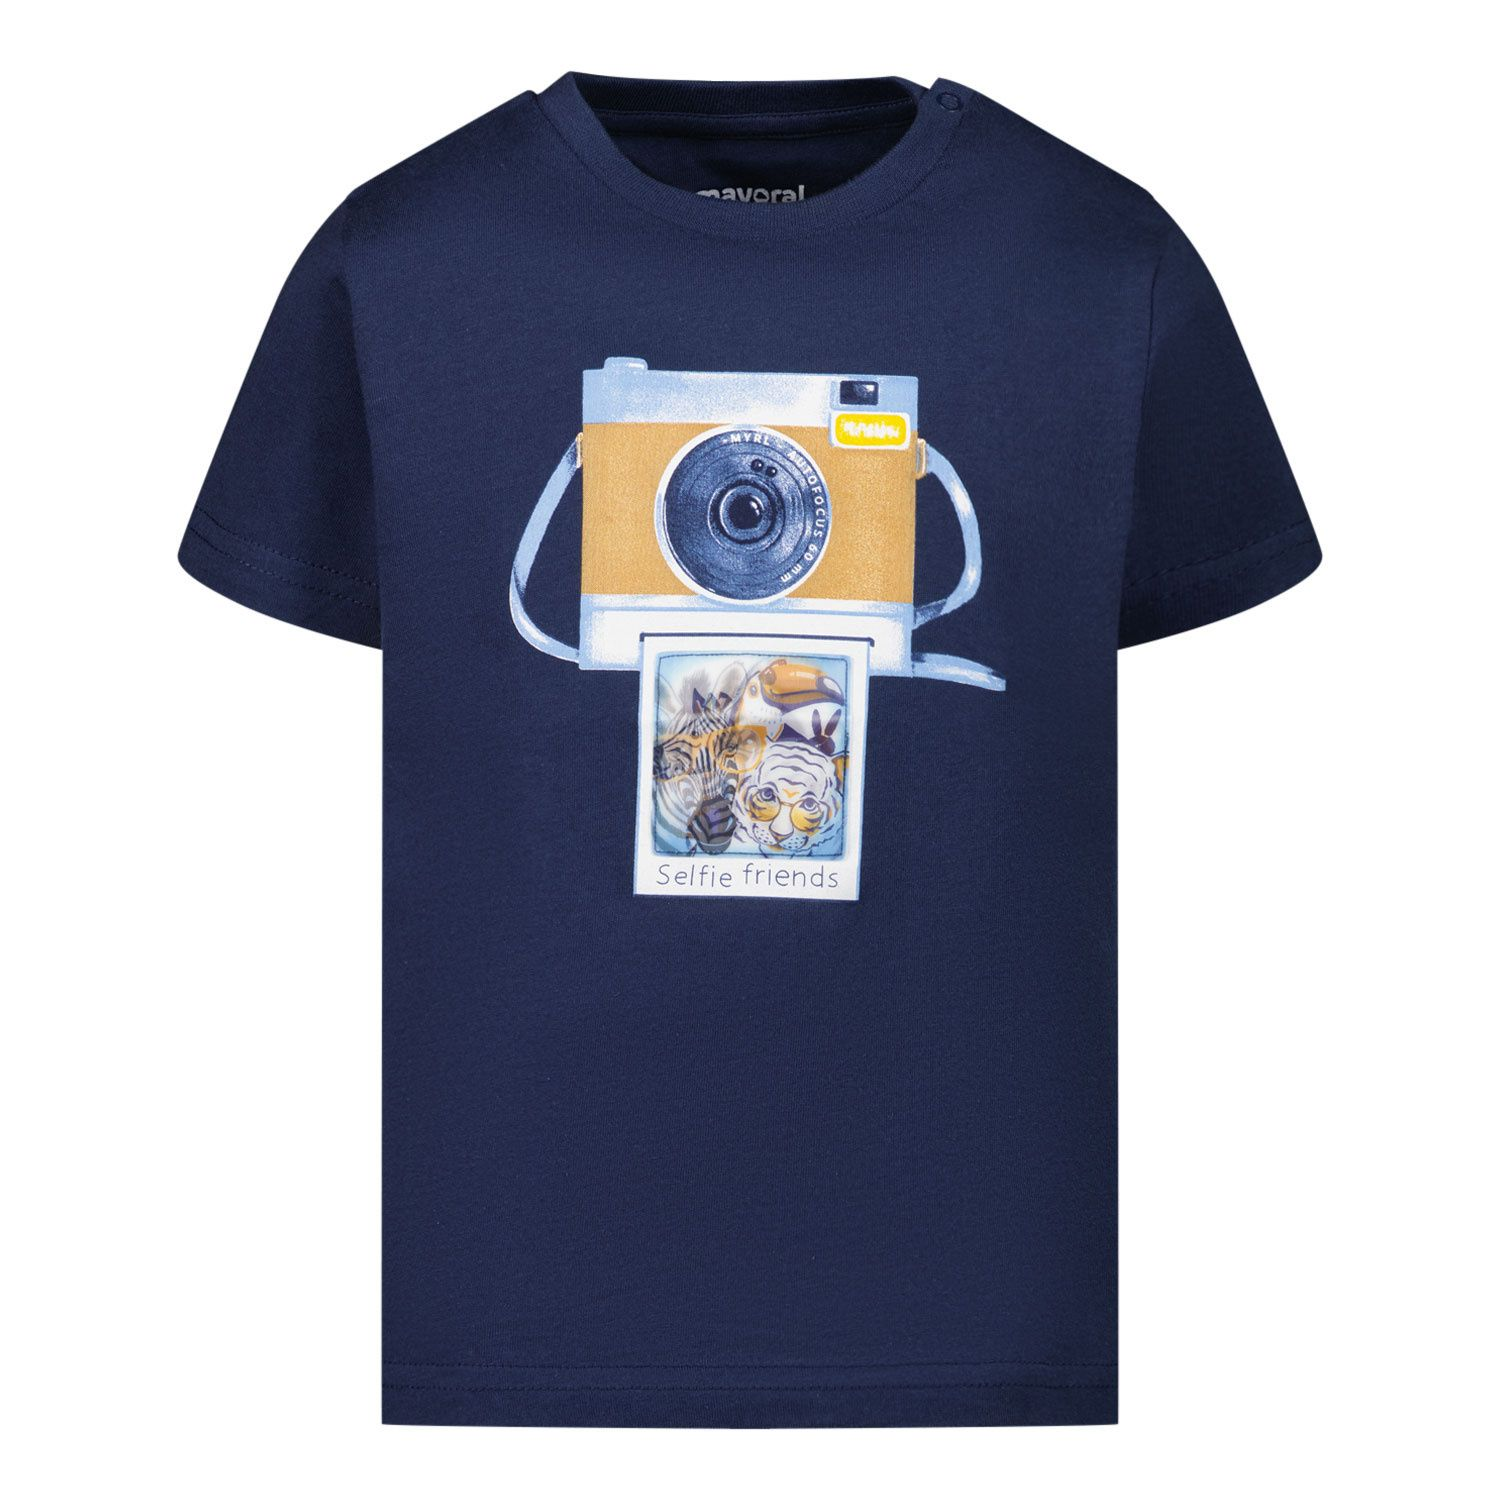 Picture of Mayoral 1003 baby shirt navy